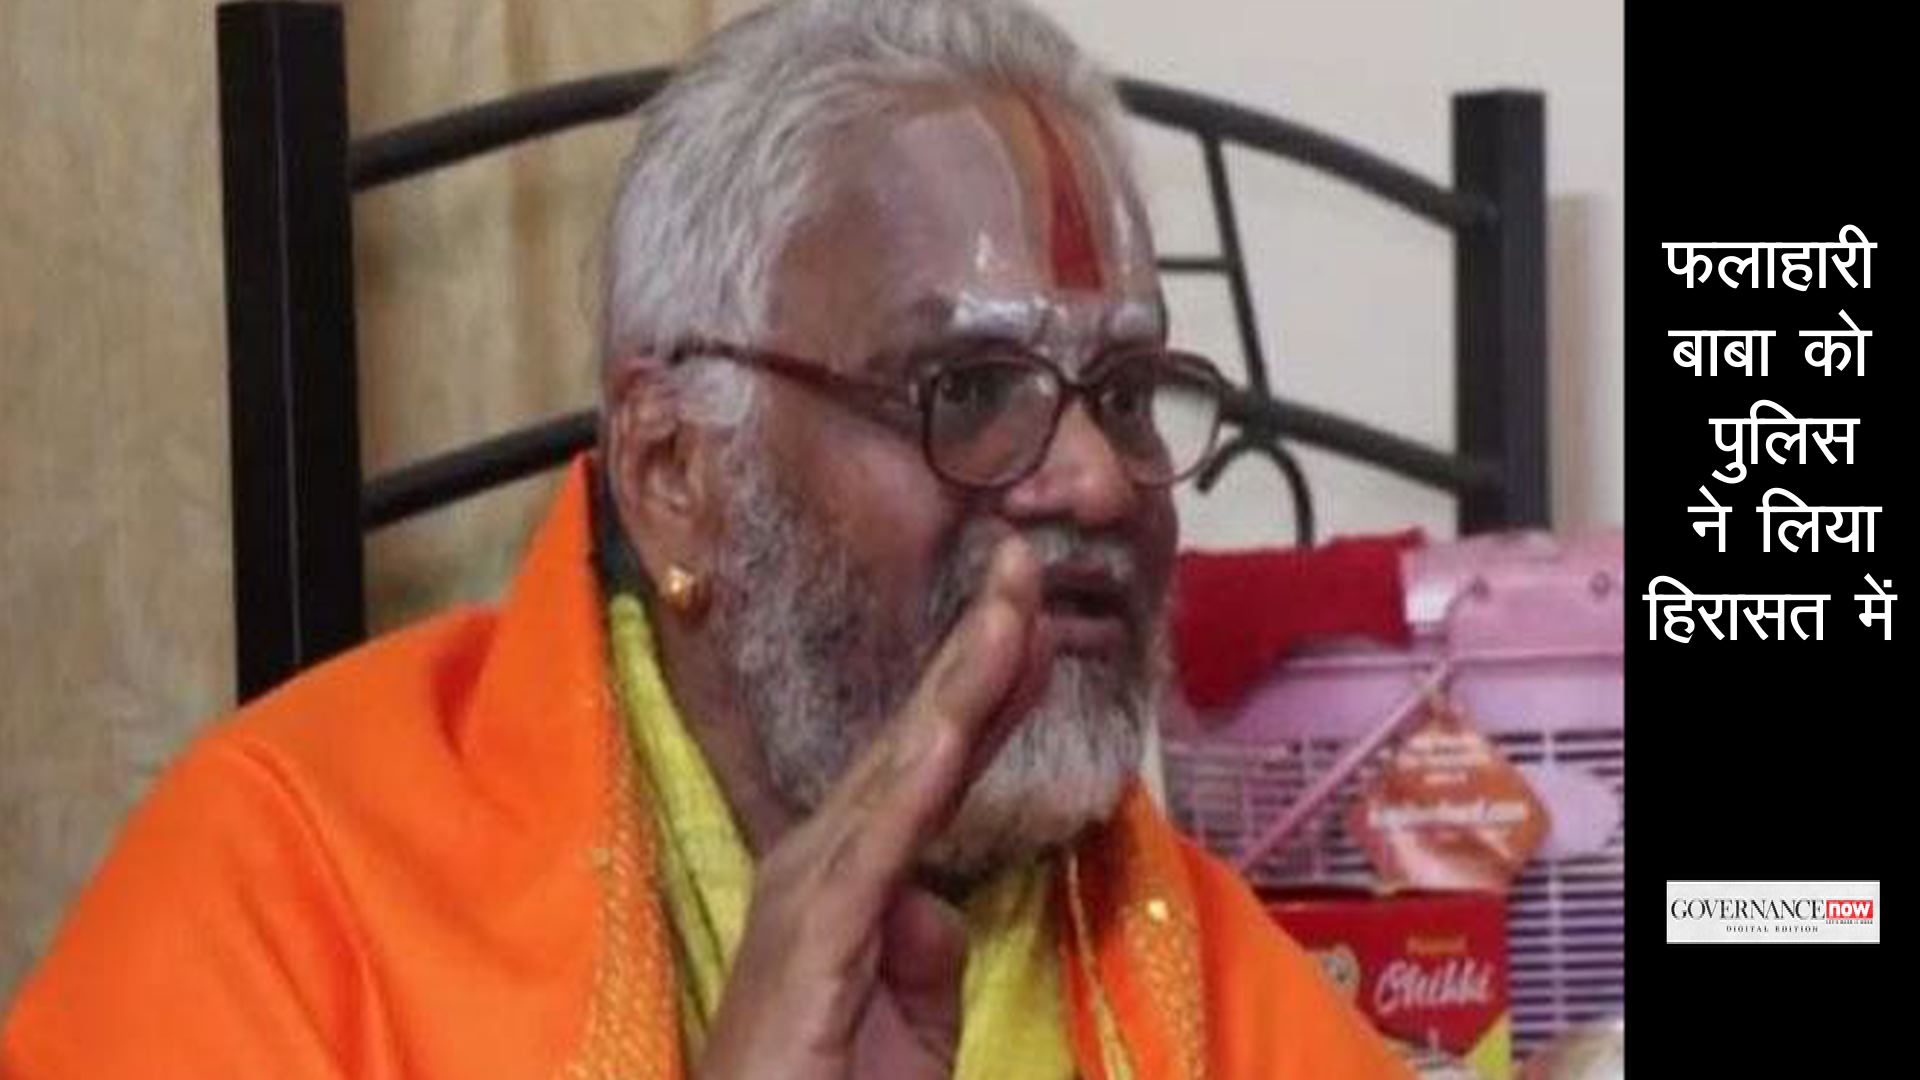 Falahari Maharaj arrested on rape charges